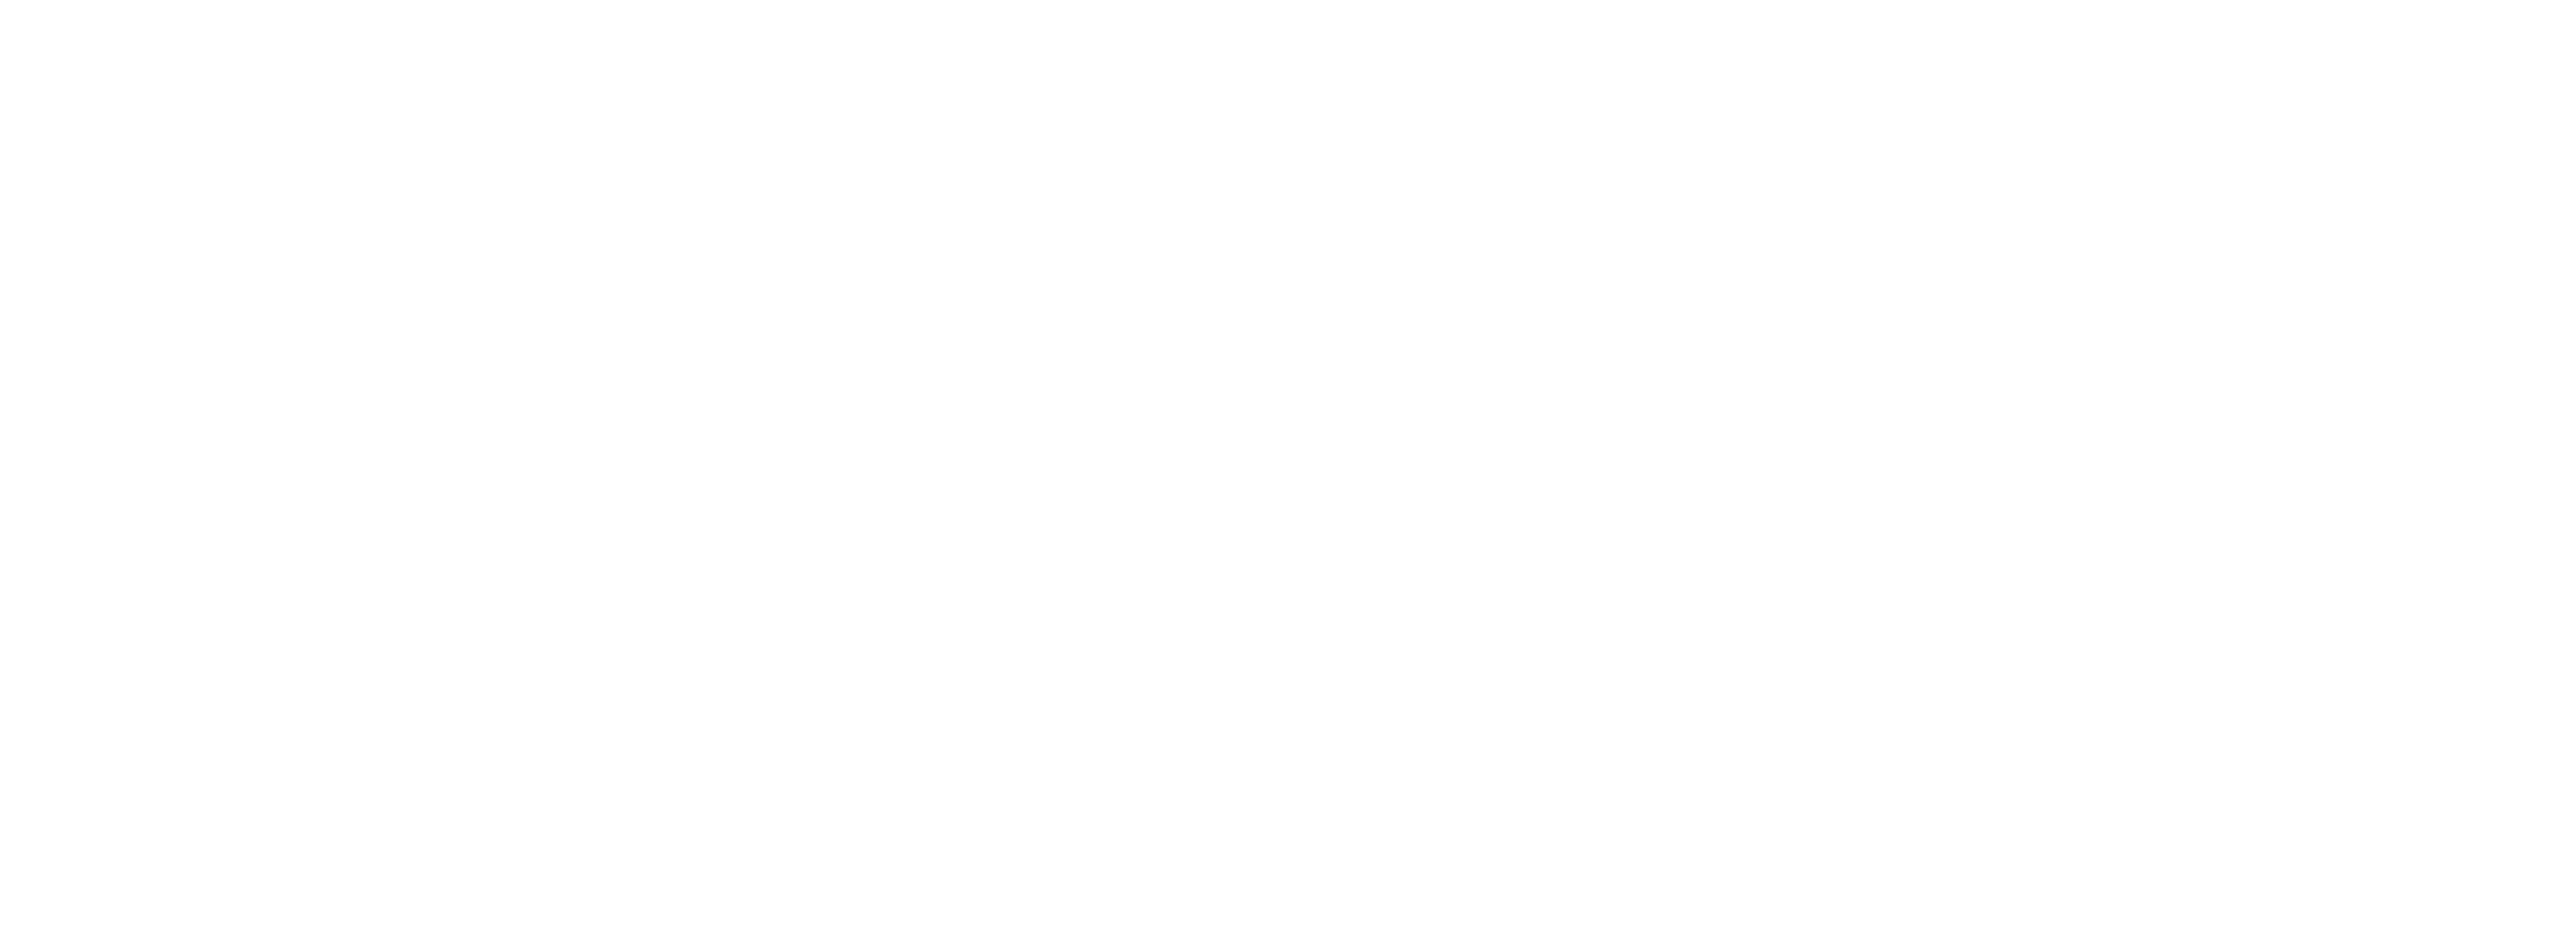 Pucara Resources Corporation